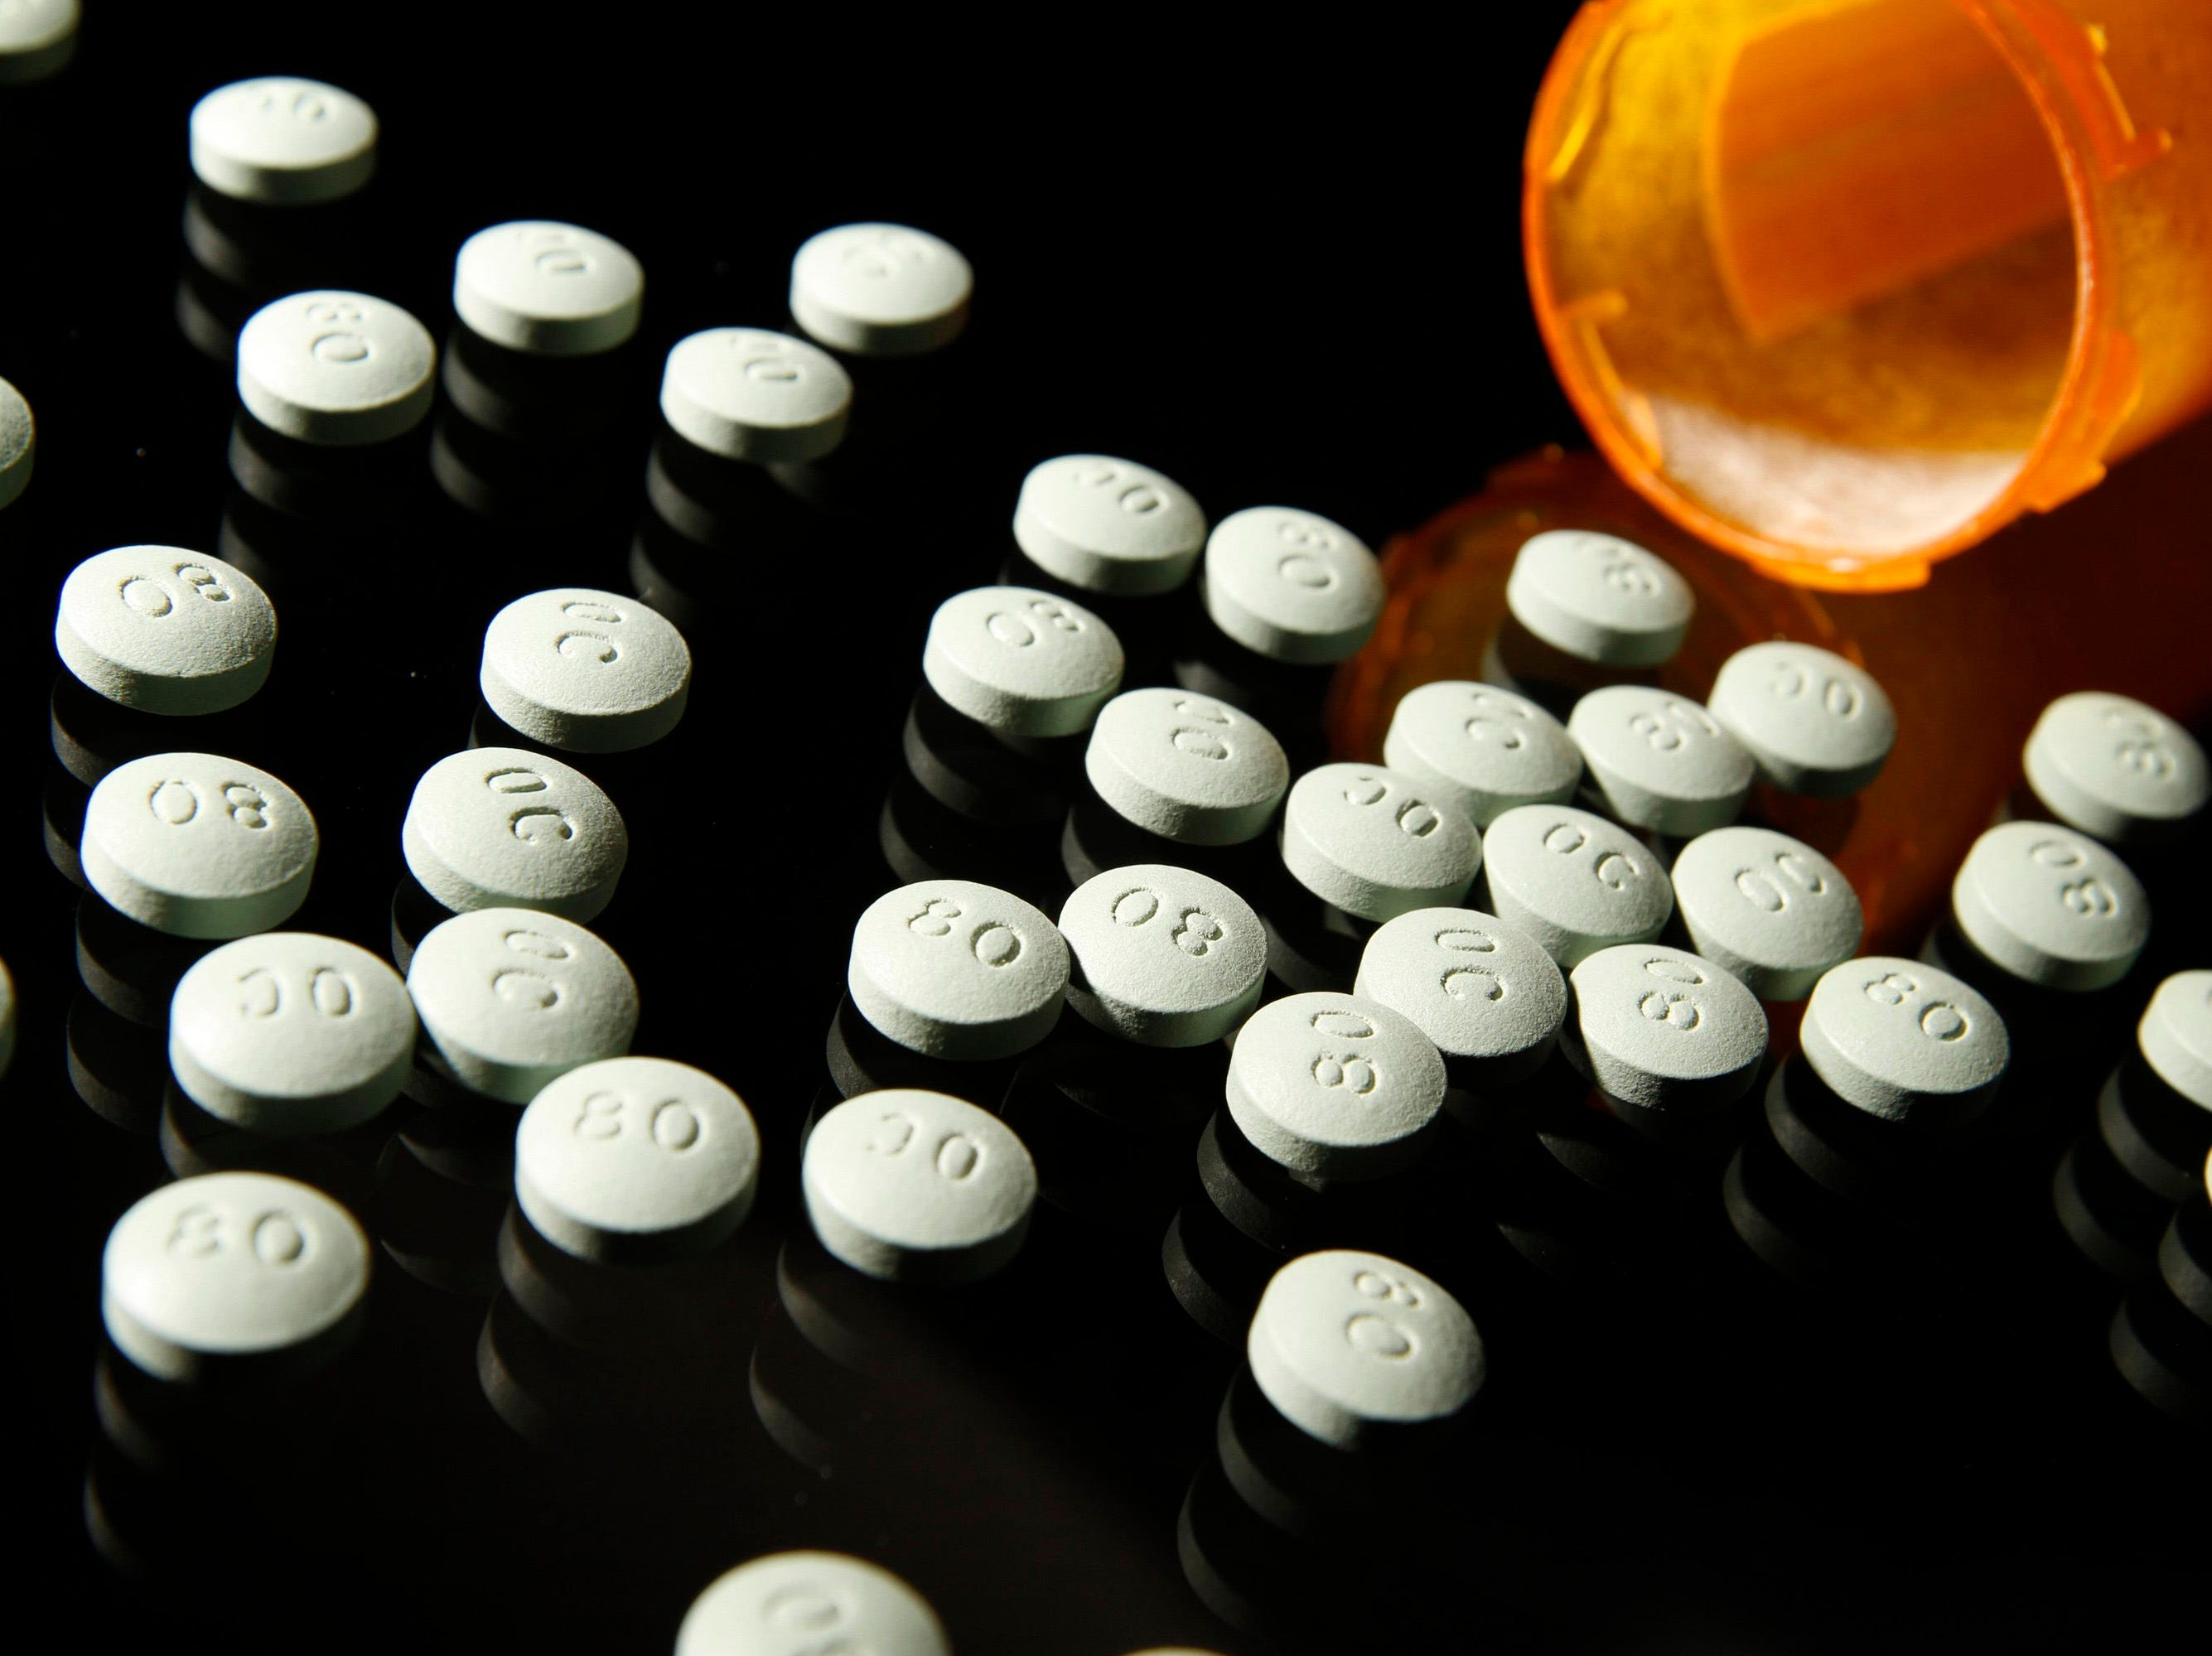 Purdue Pharma has sold more than $27 billion worth of the powerful painkiller OxyContin since its introduction in 1996. (Liz O. Baylen/Los Angeles Times/MCT)